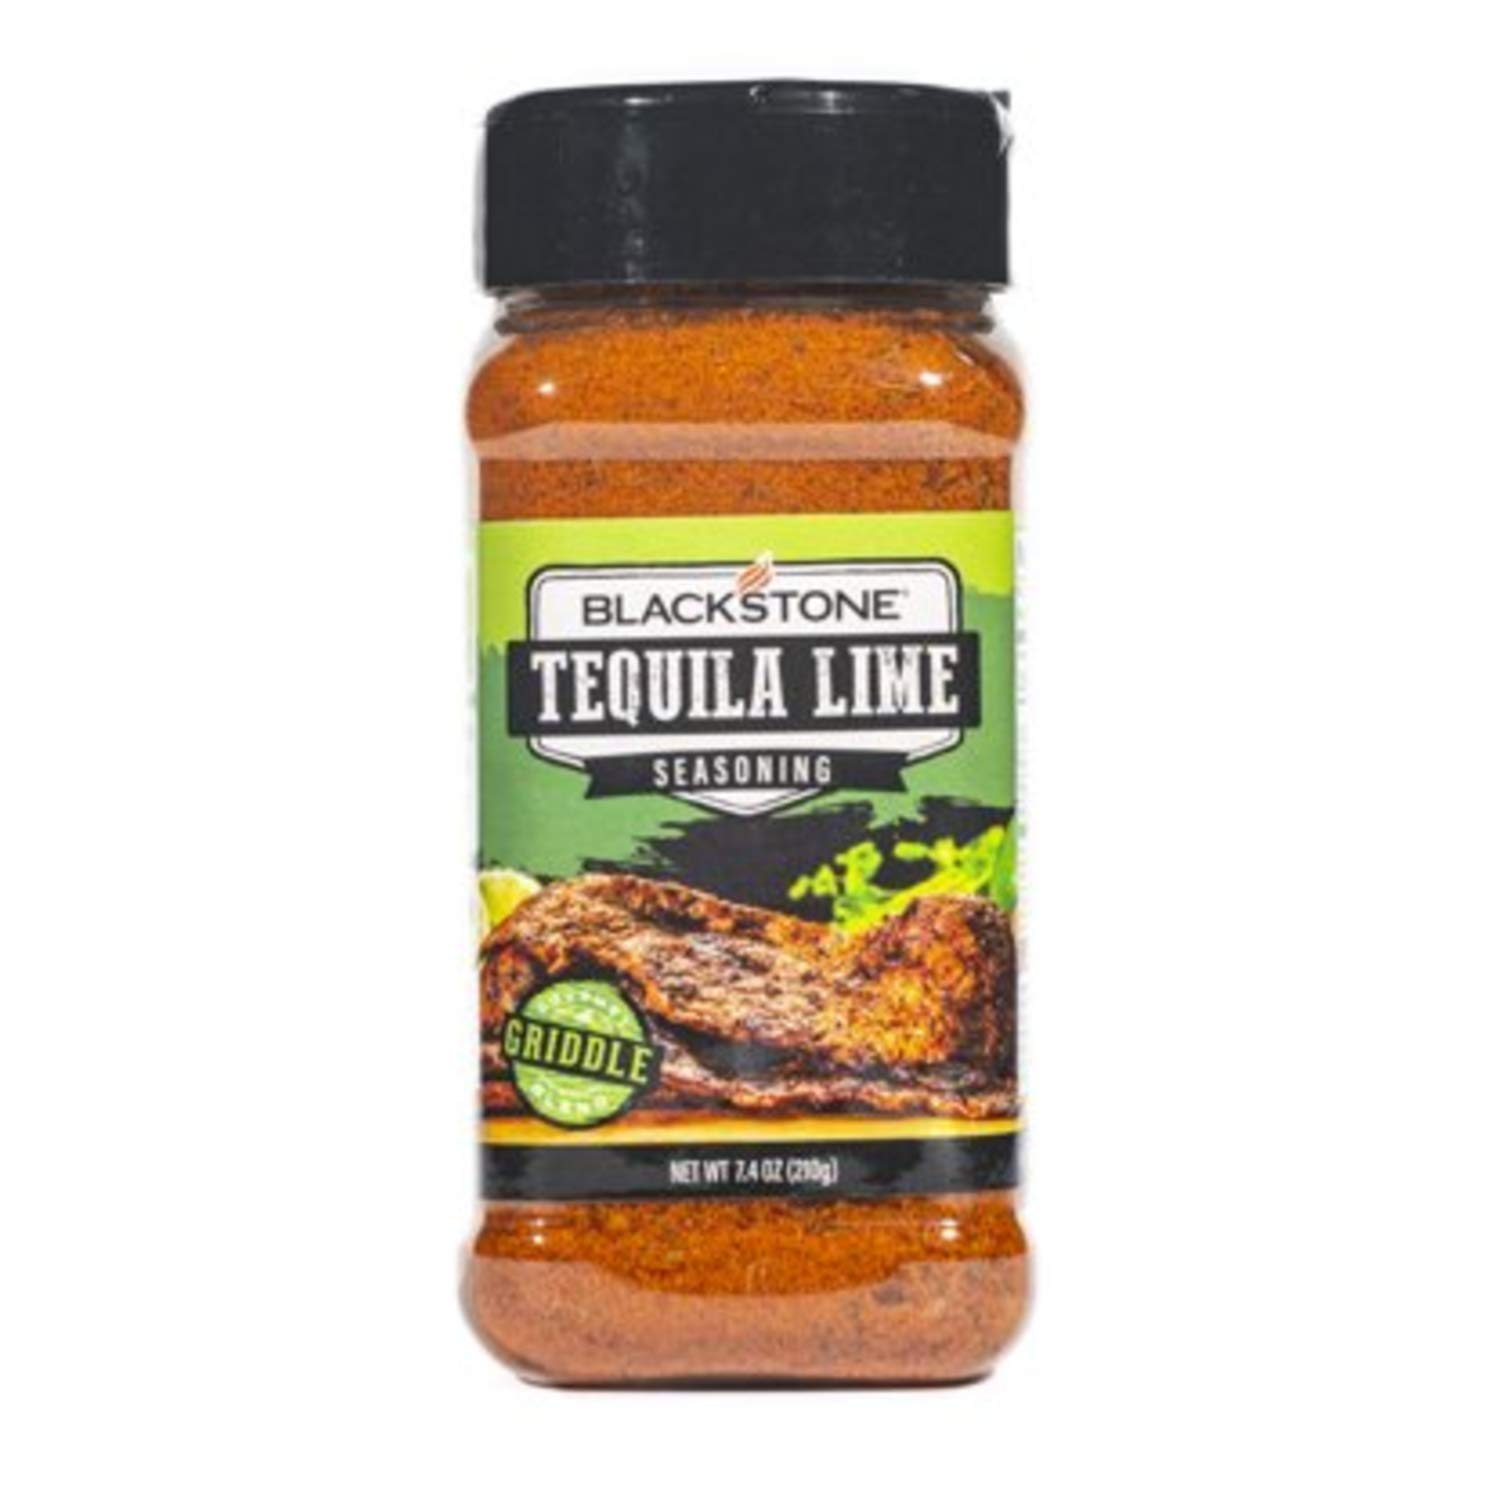 Blackstone Tequila Lime Seasoning